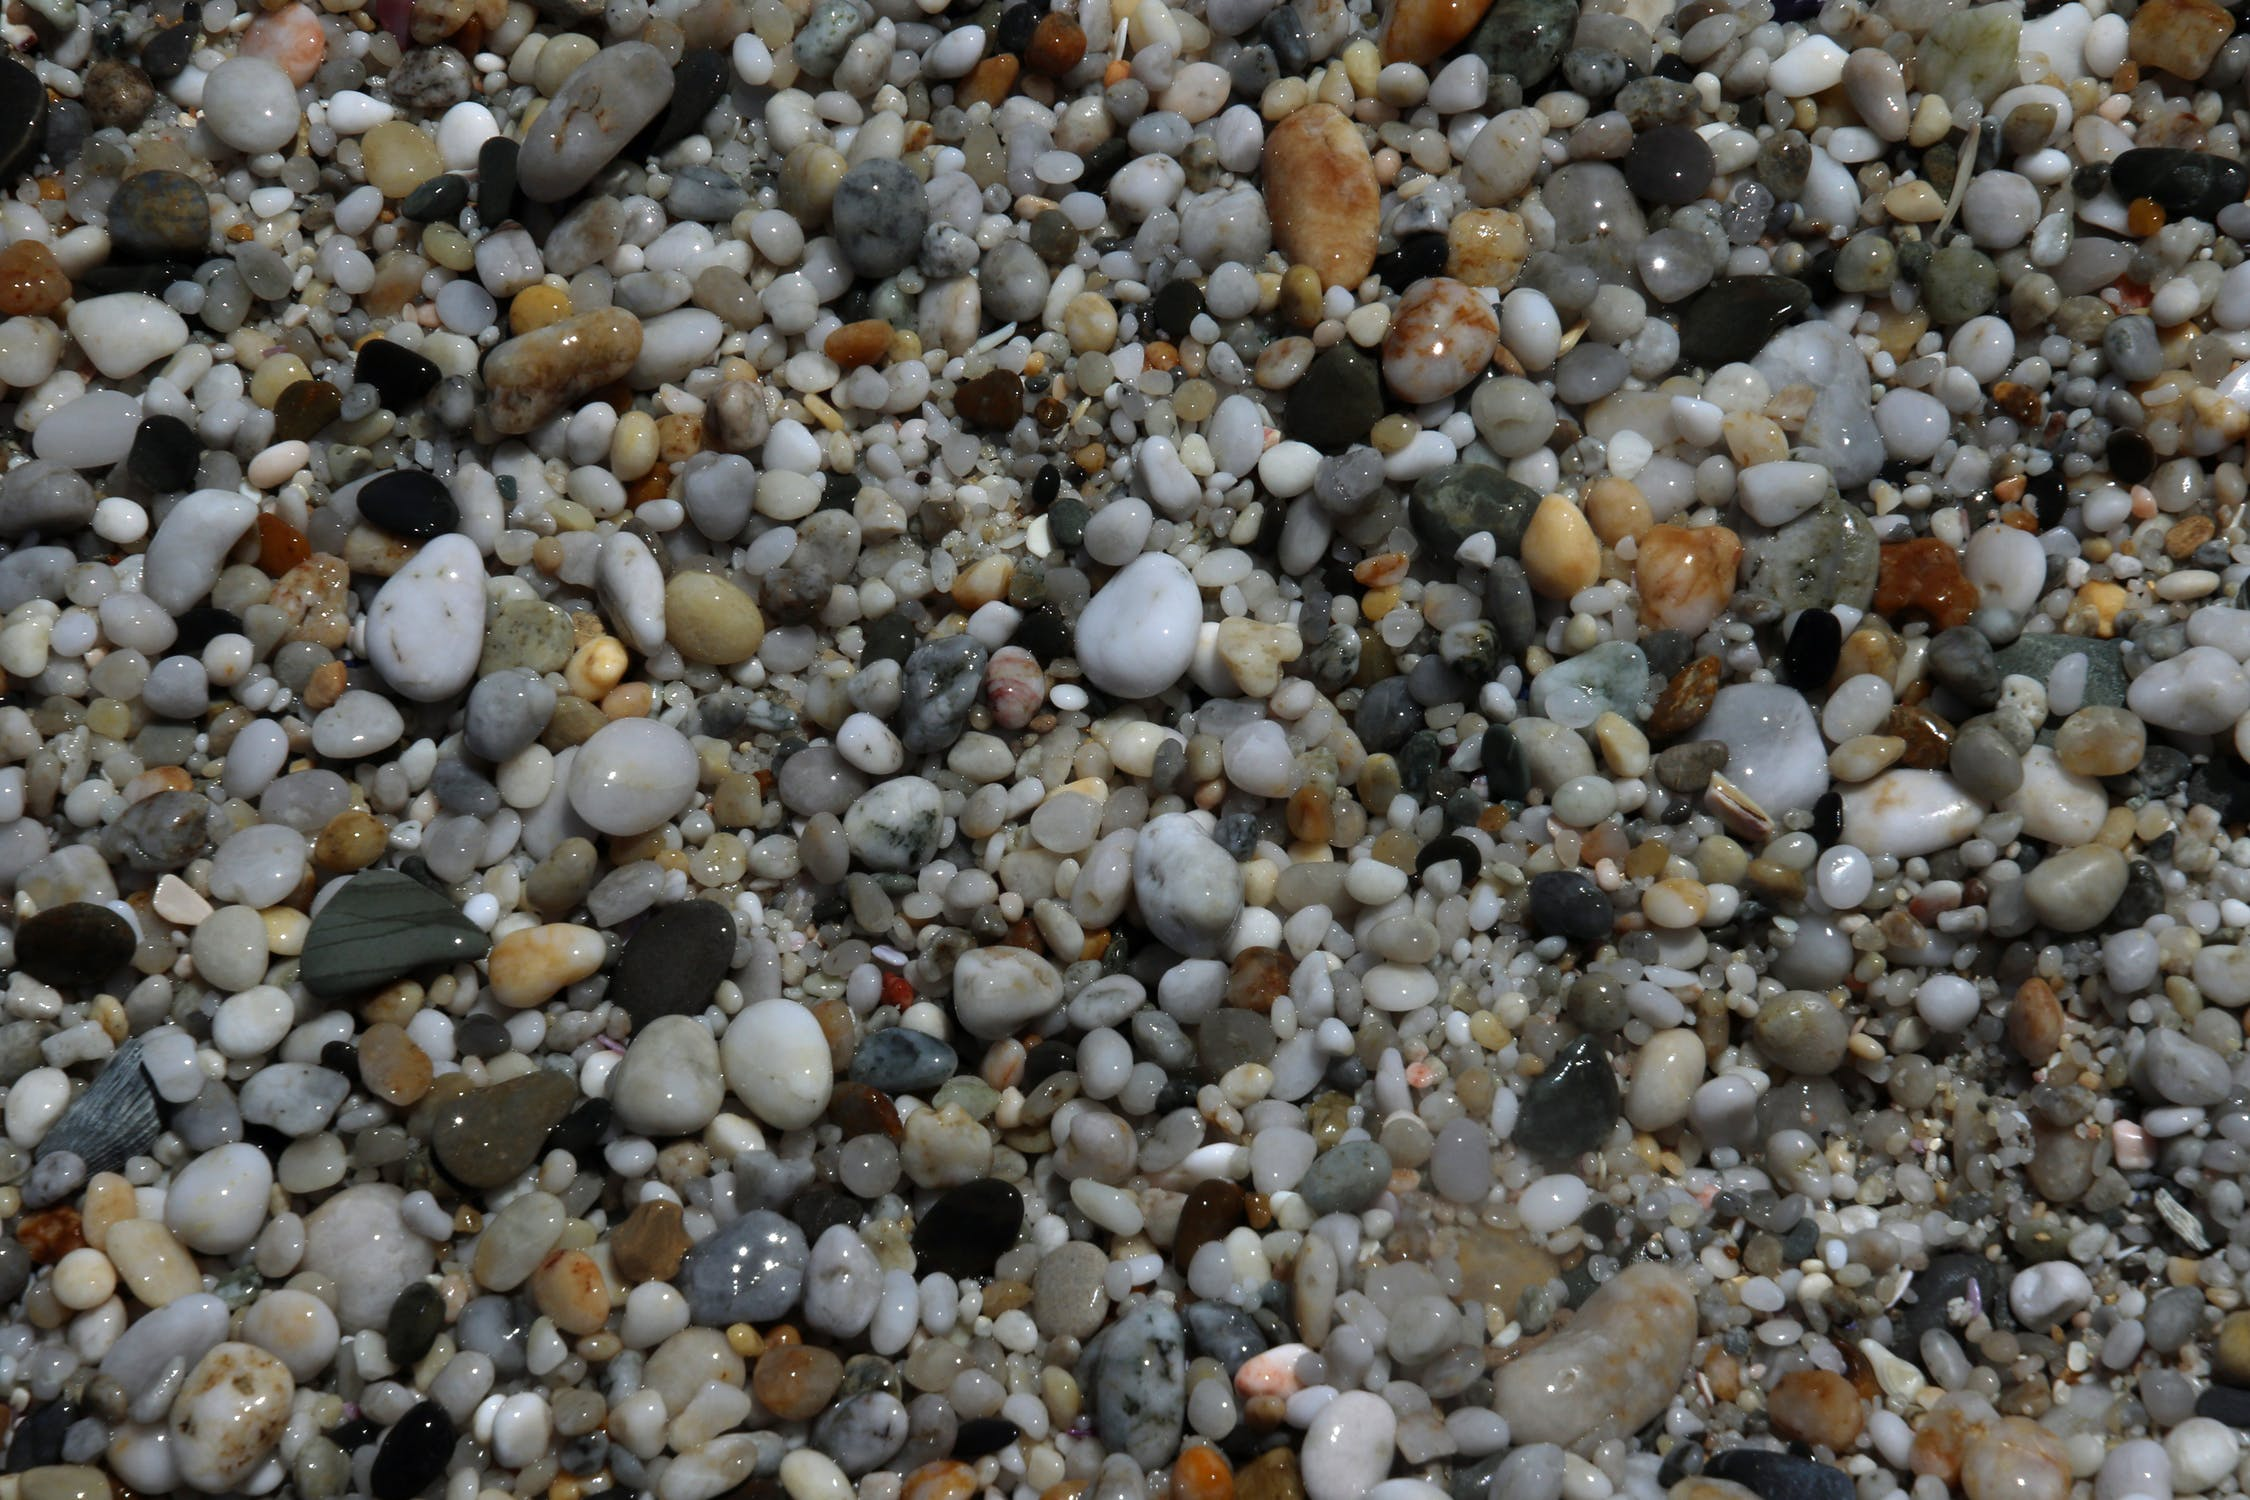 Wet stones on the beach photo